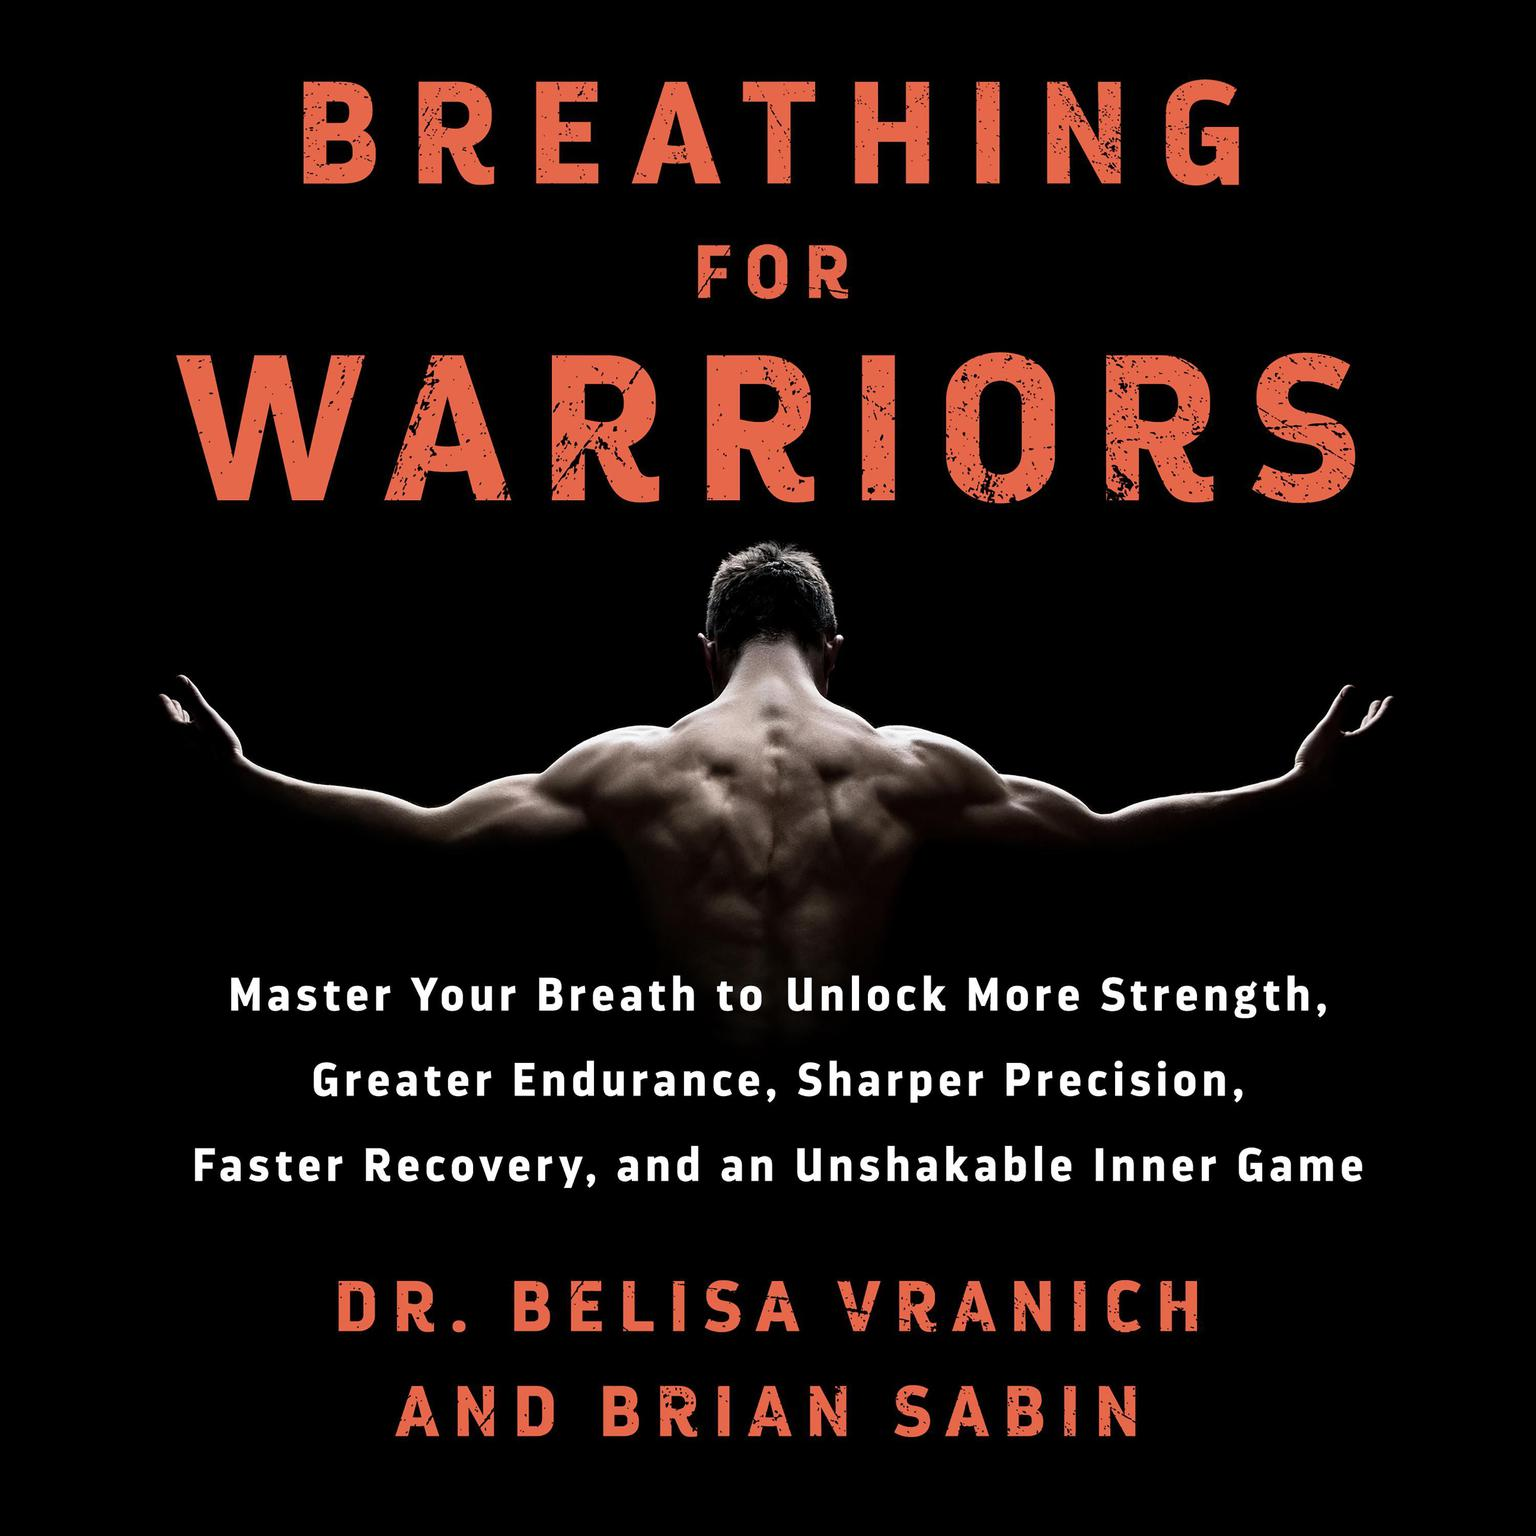 Printable Breathing for Warriors: Master Your Breath to Unlock More Strength, Greater Endurance, Sharper Precision, Faster Recovery, and an Unshakable Inner Game Audiobook Cover Art